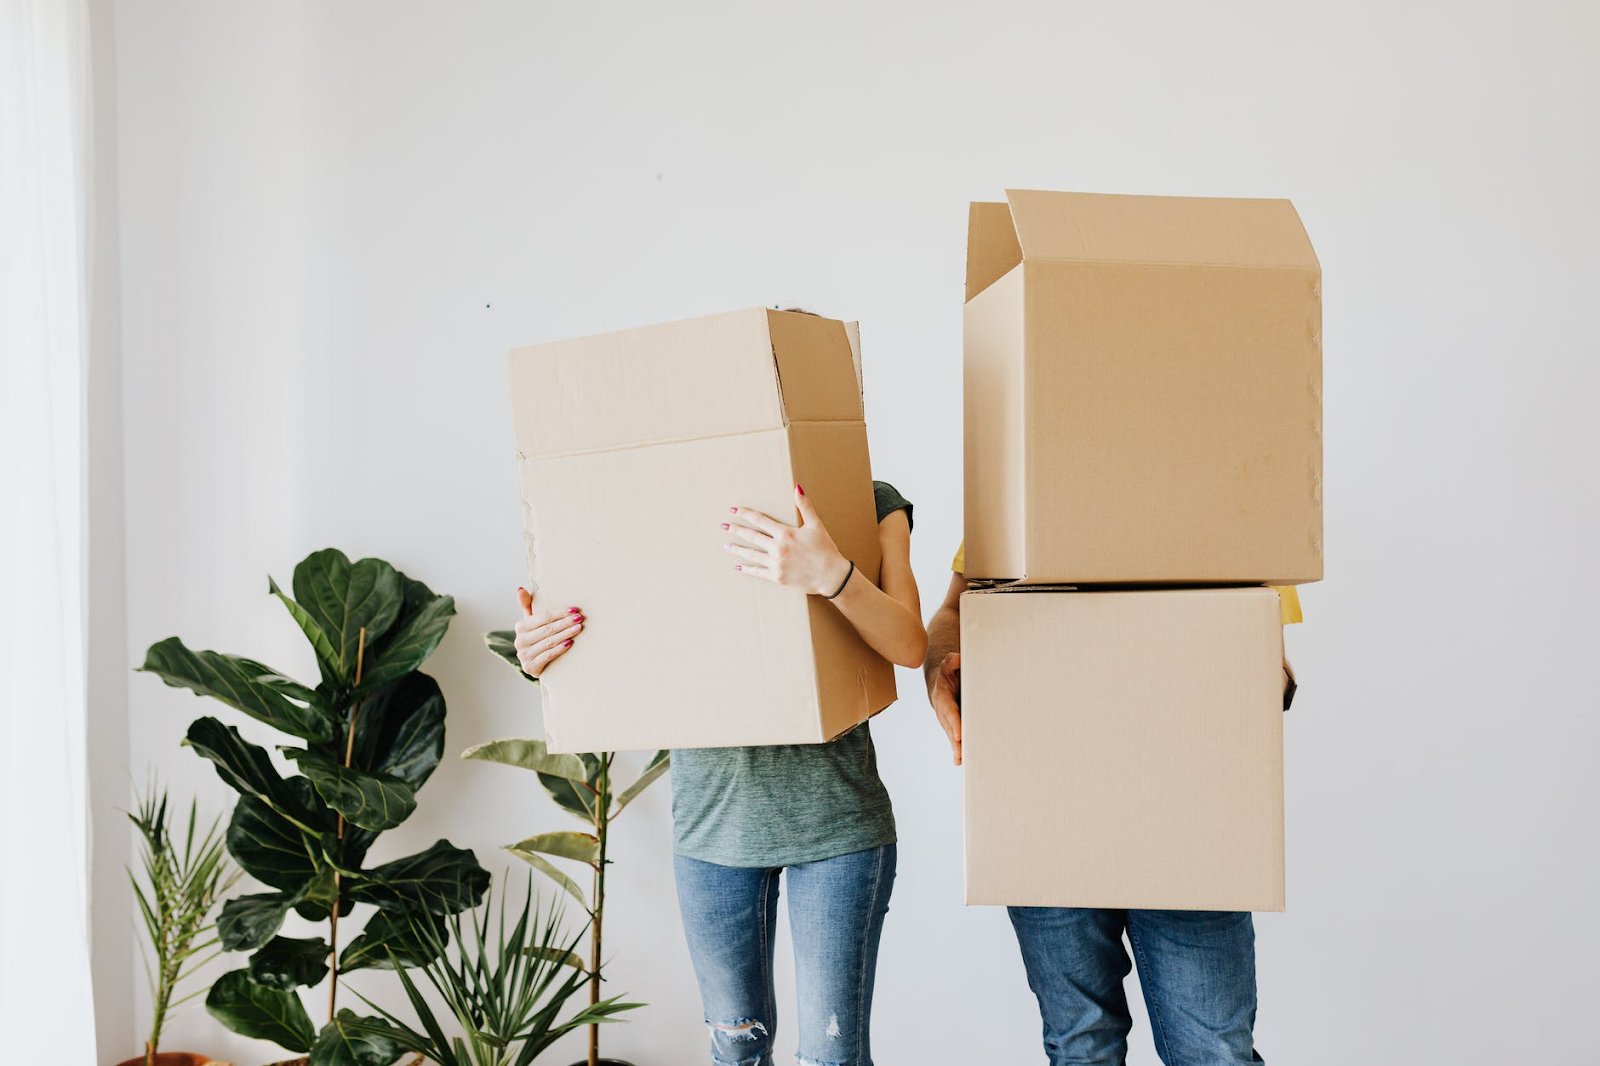 Is It Better To Drive Or Fly During A Long-Distance House Move?